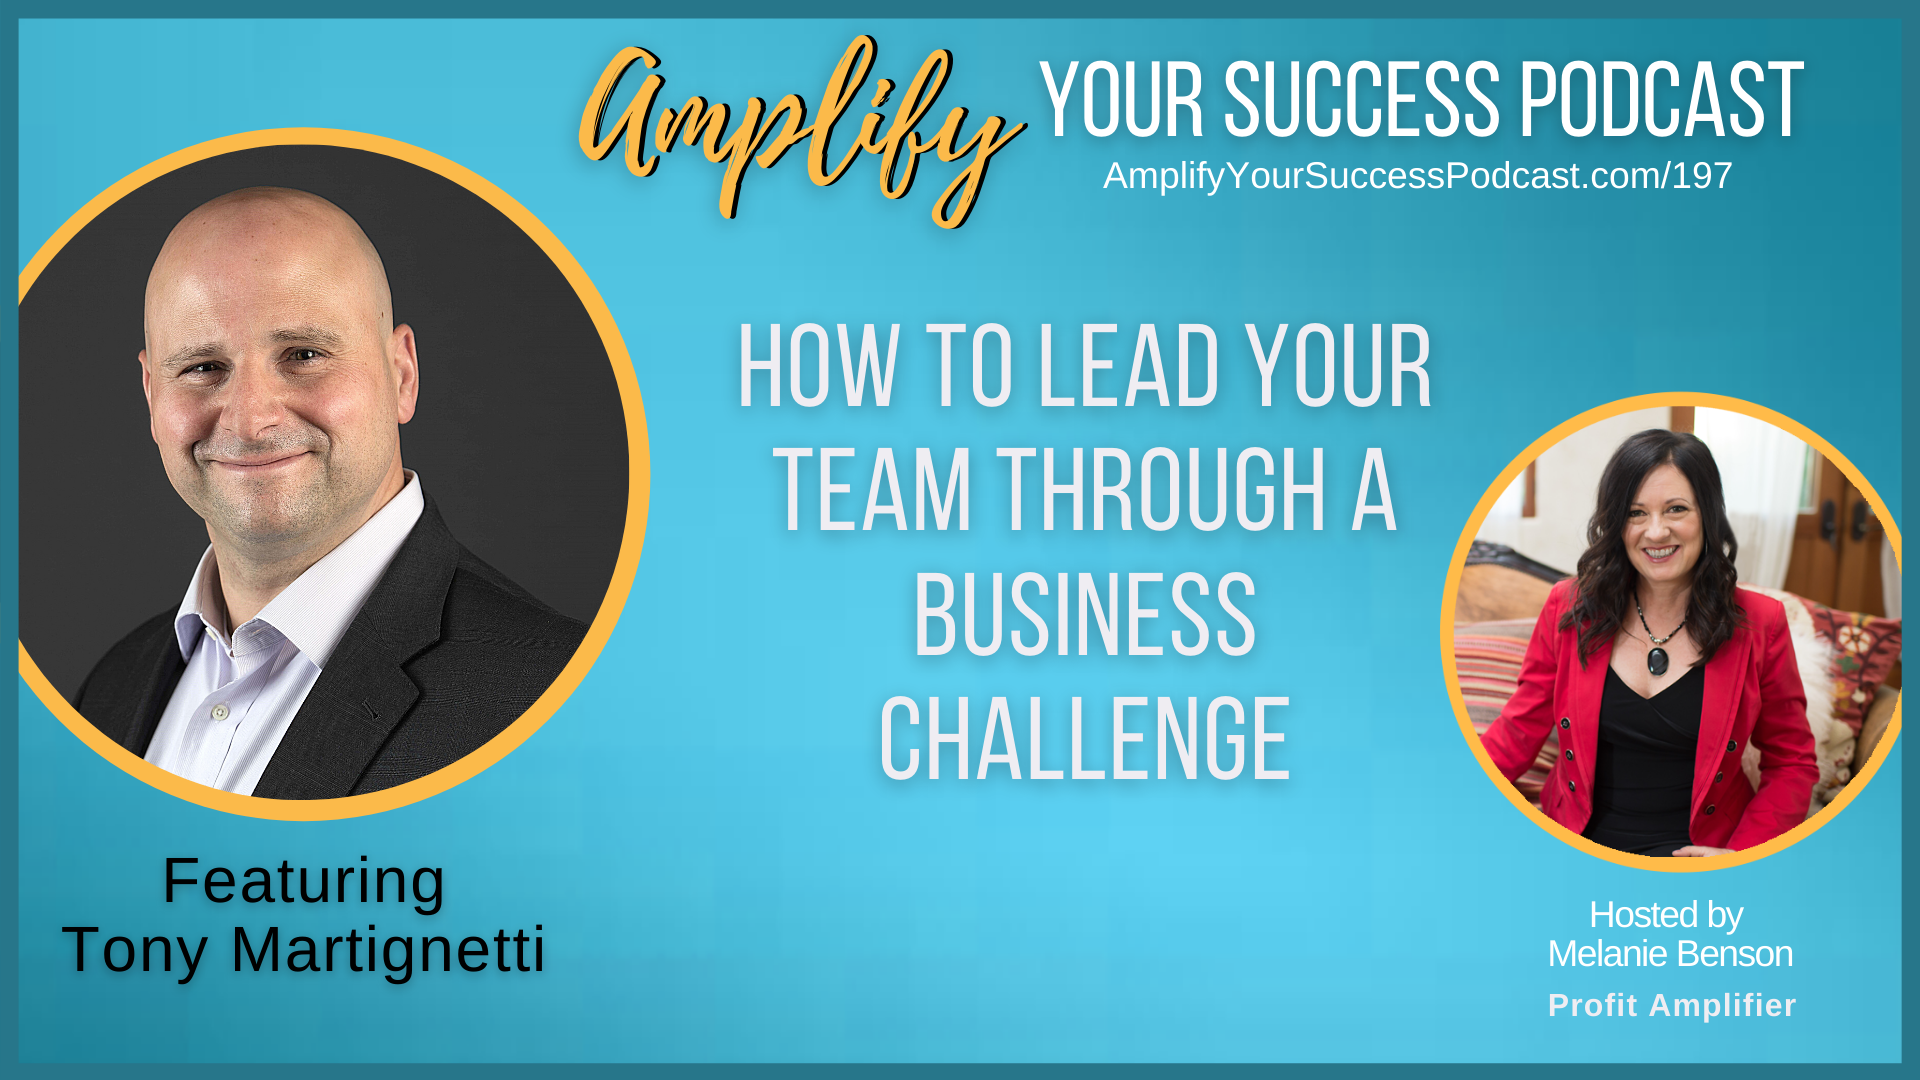 How to Lead Your Team Through a Business Challenge with Tony Martignetti